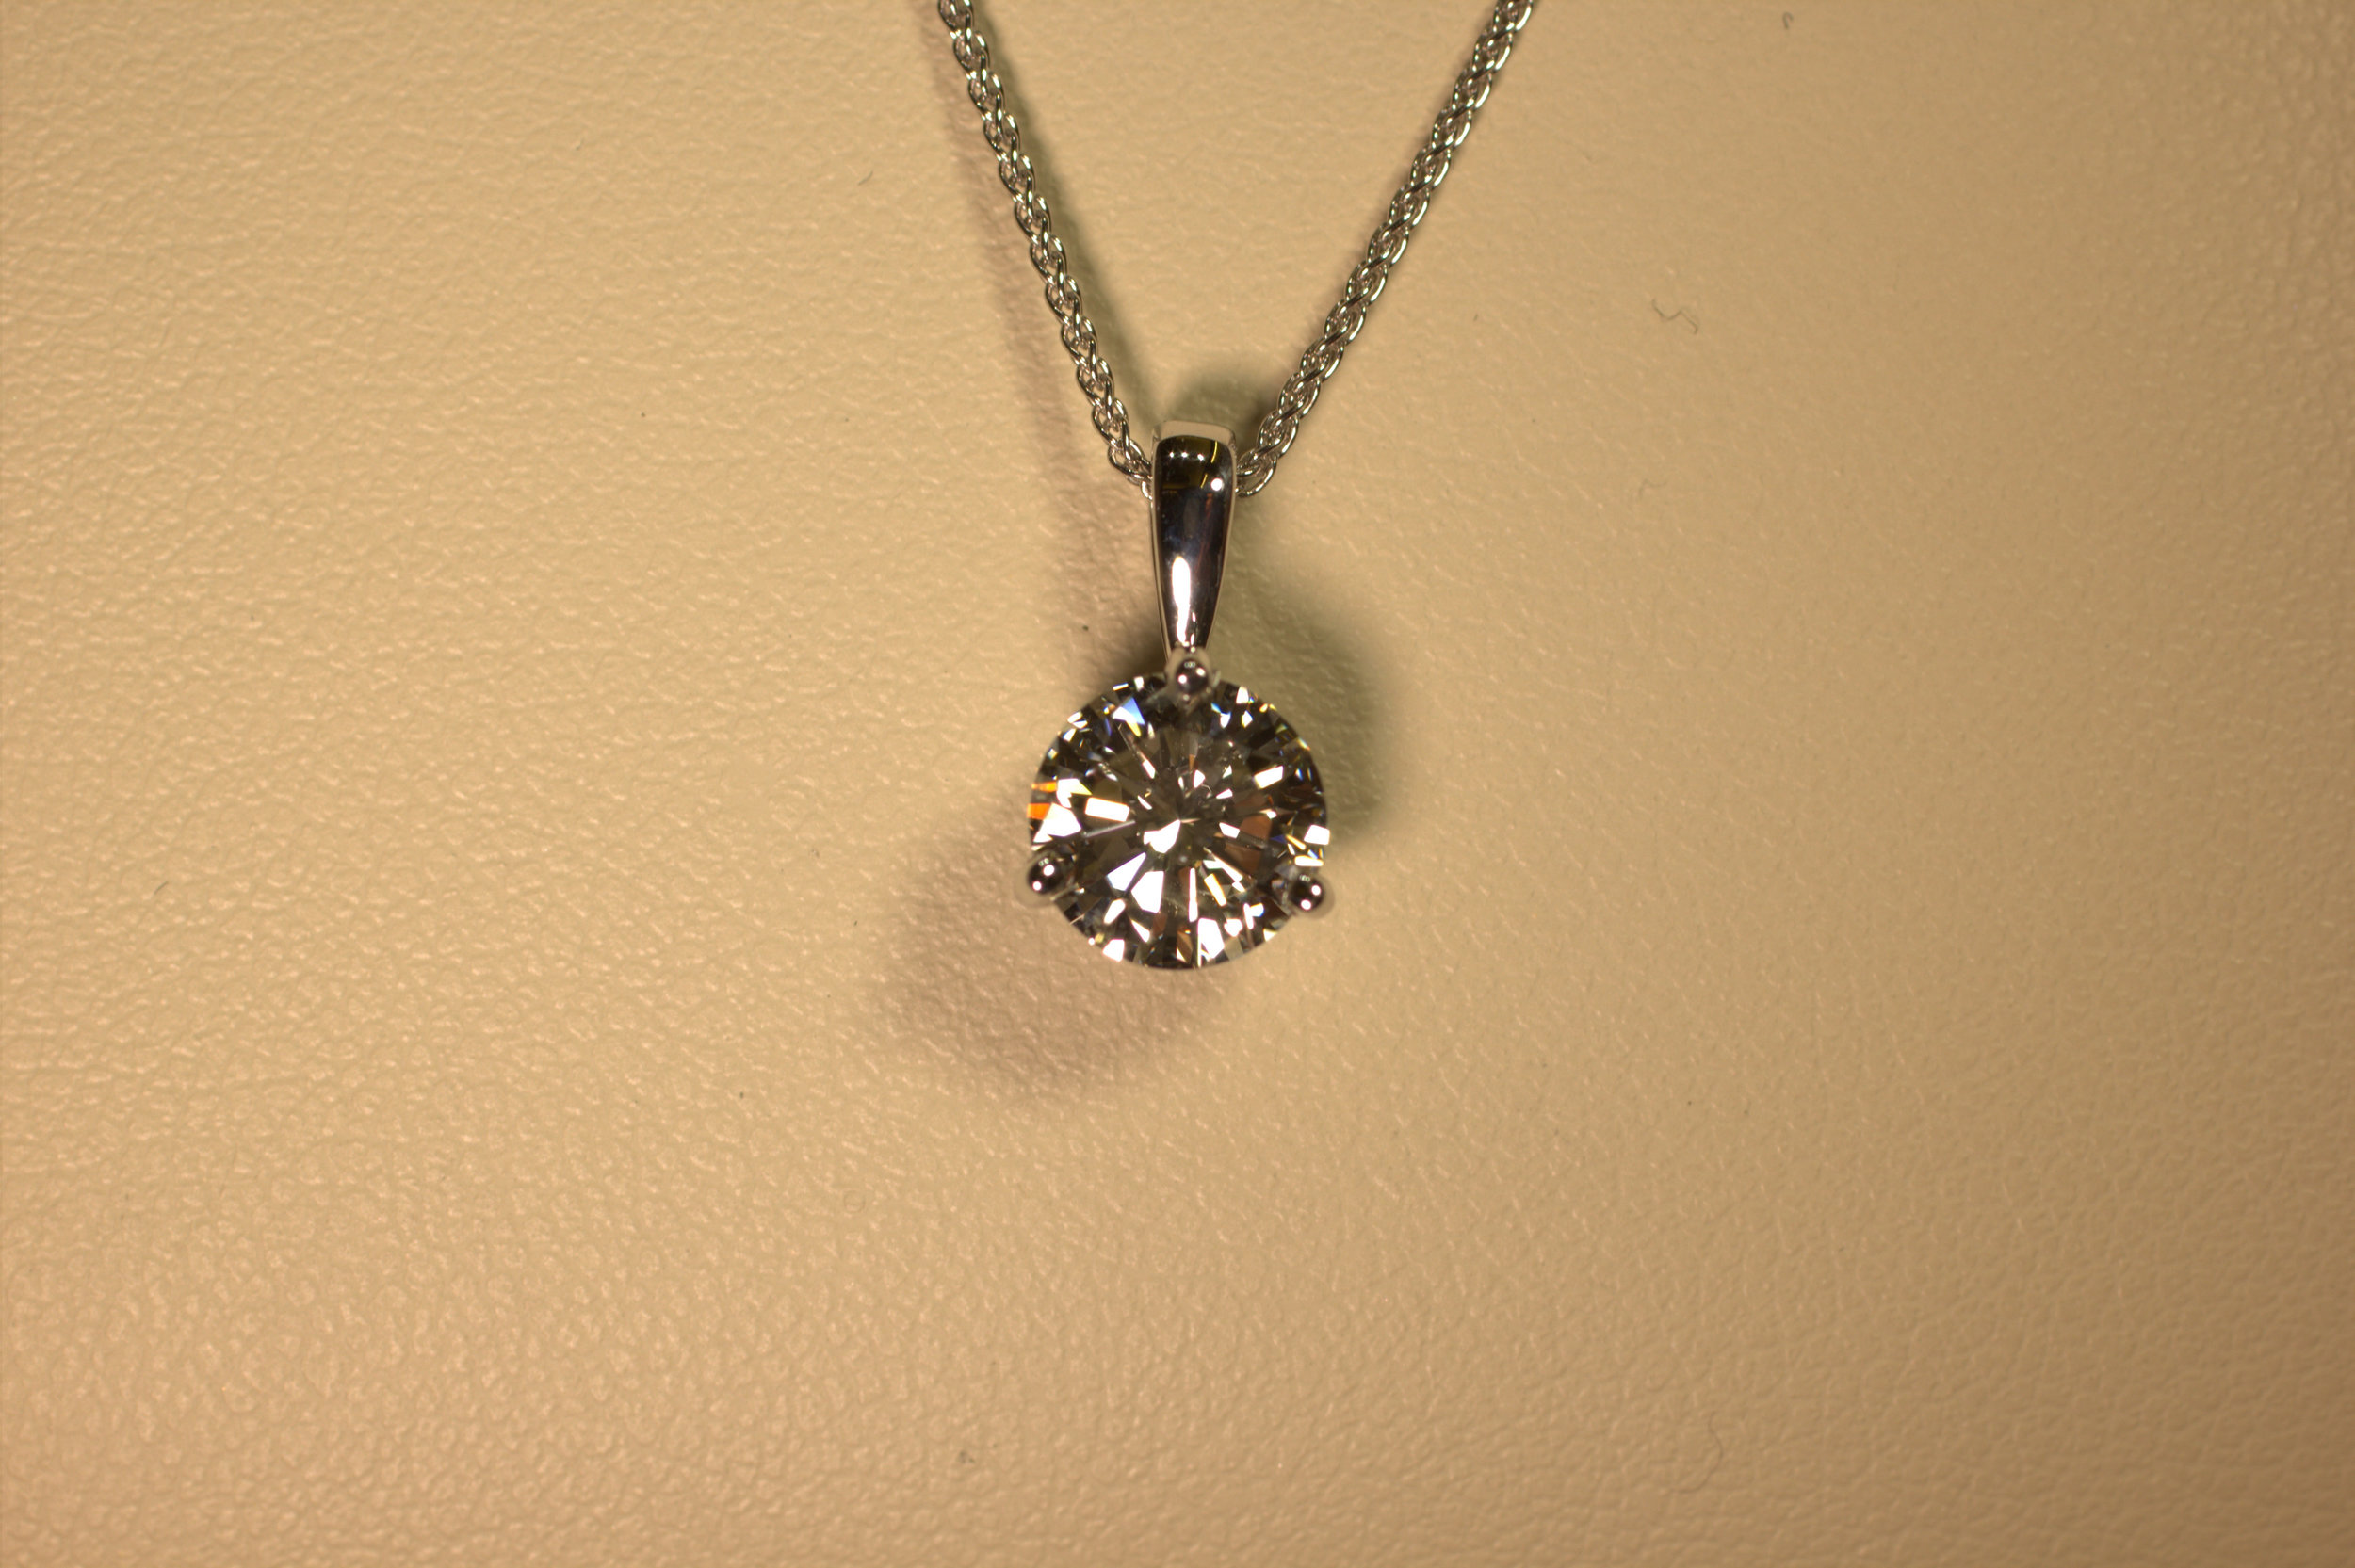 .26 carat diamond solitaire pendant. This classic piece is the perfect gift for any woman. Anyone who doesn't have one wants one. The piece is very versatile, it can be dress up any outfit or be the perfect complement to elegant attire.   $600